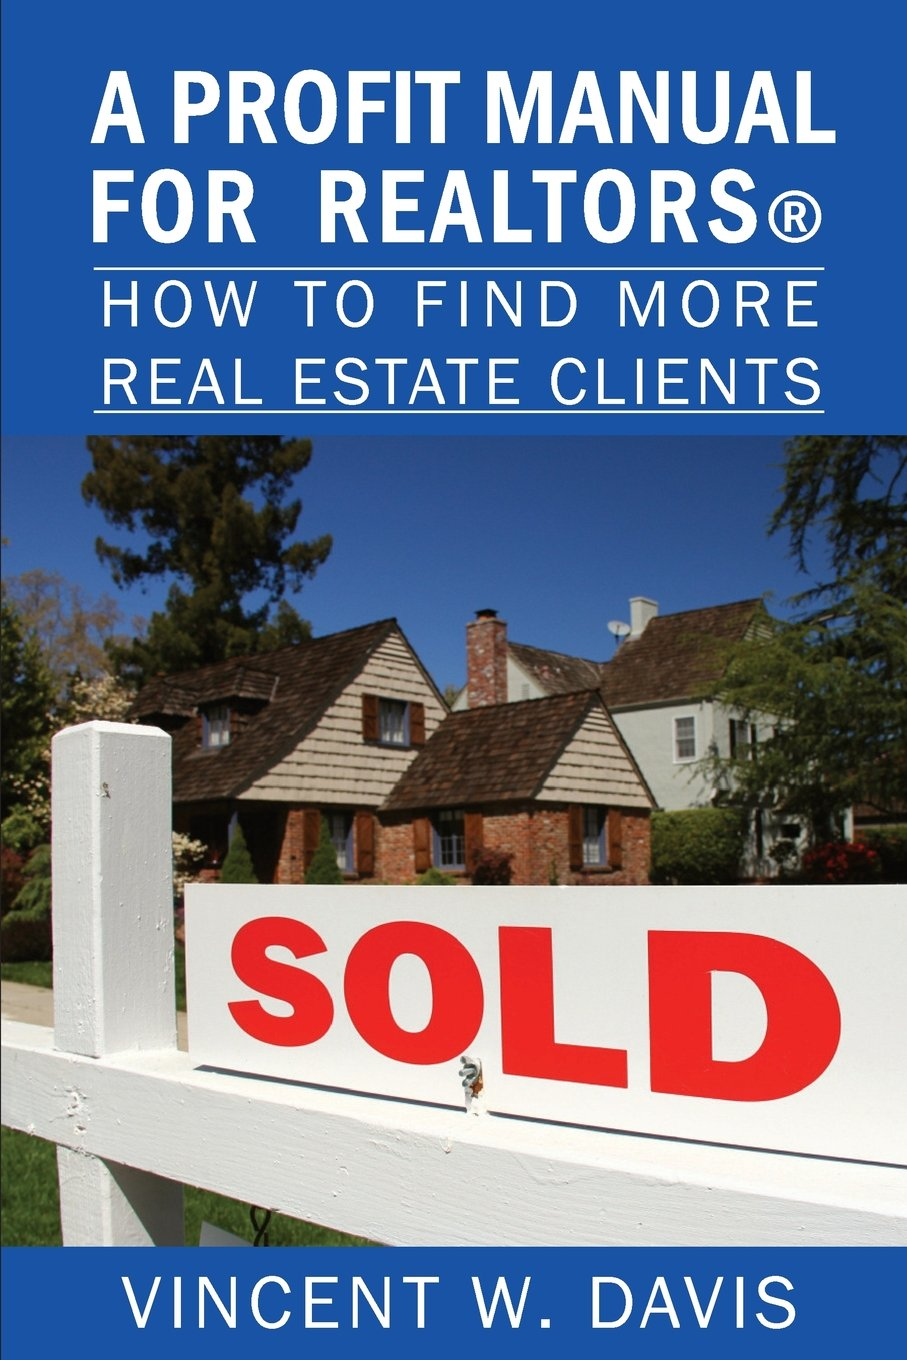 Download A Profit Manual for Realtors: How to Attract More Real Estate Clients pdf